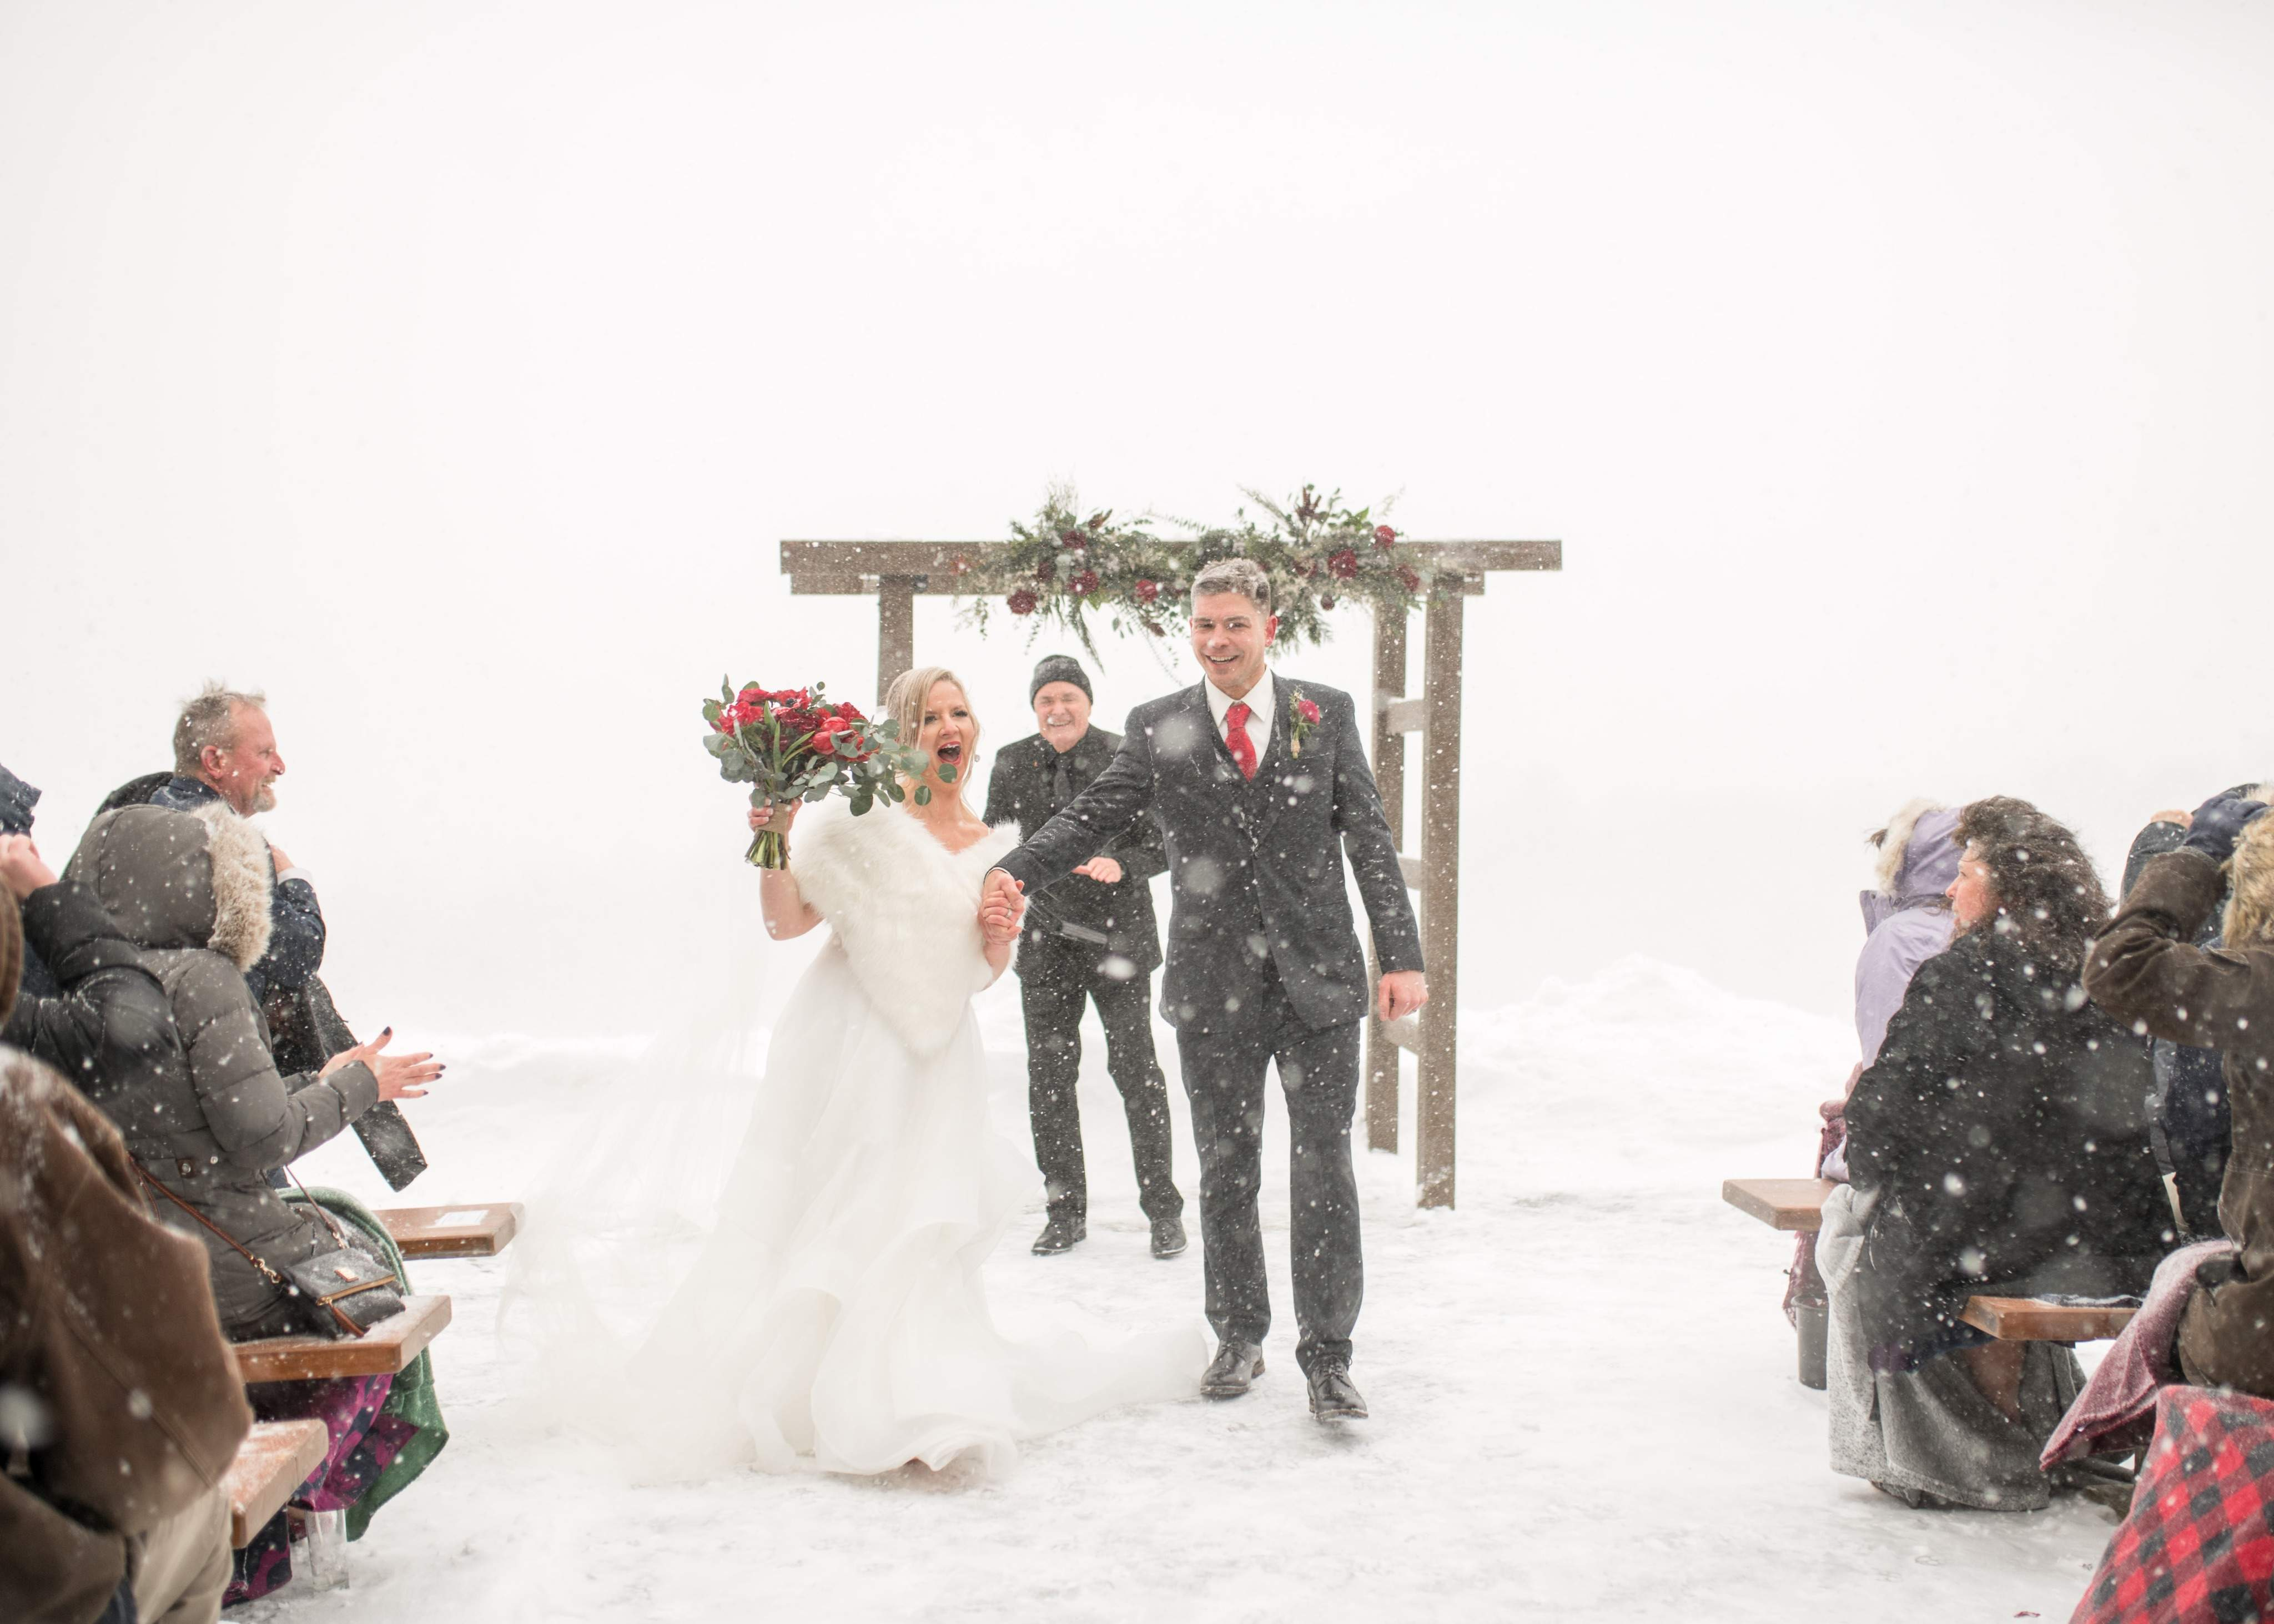 Greg Trulson, Justice of the Peace, Vermont Wedding Officiant, Elopements, Mountain Top Inn